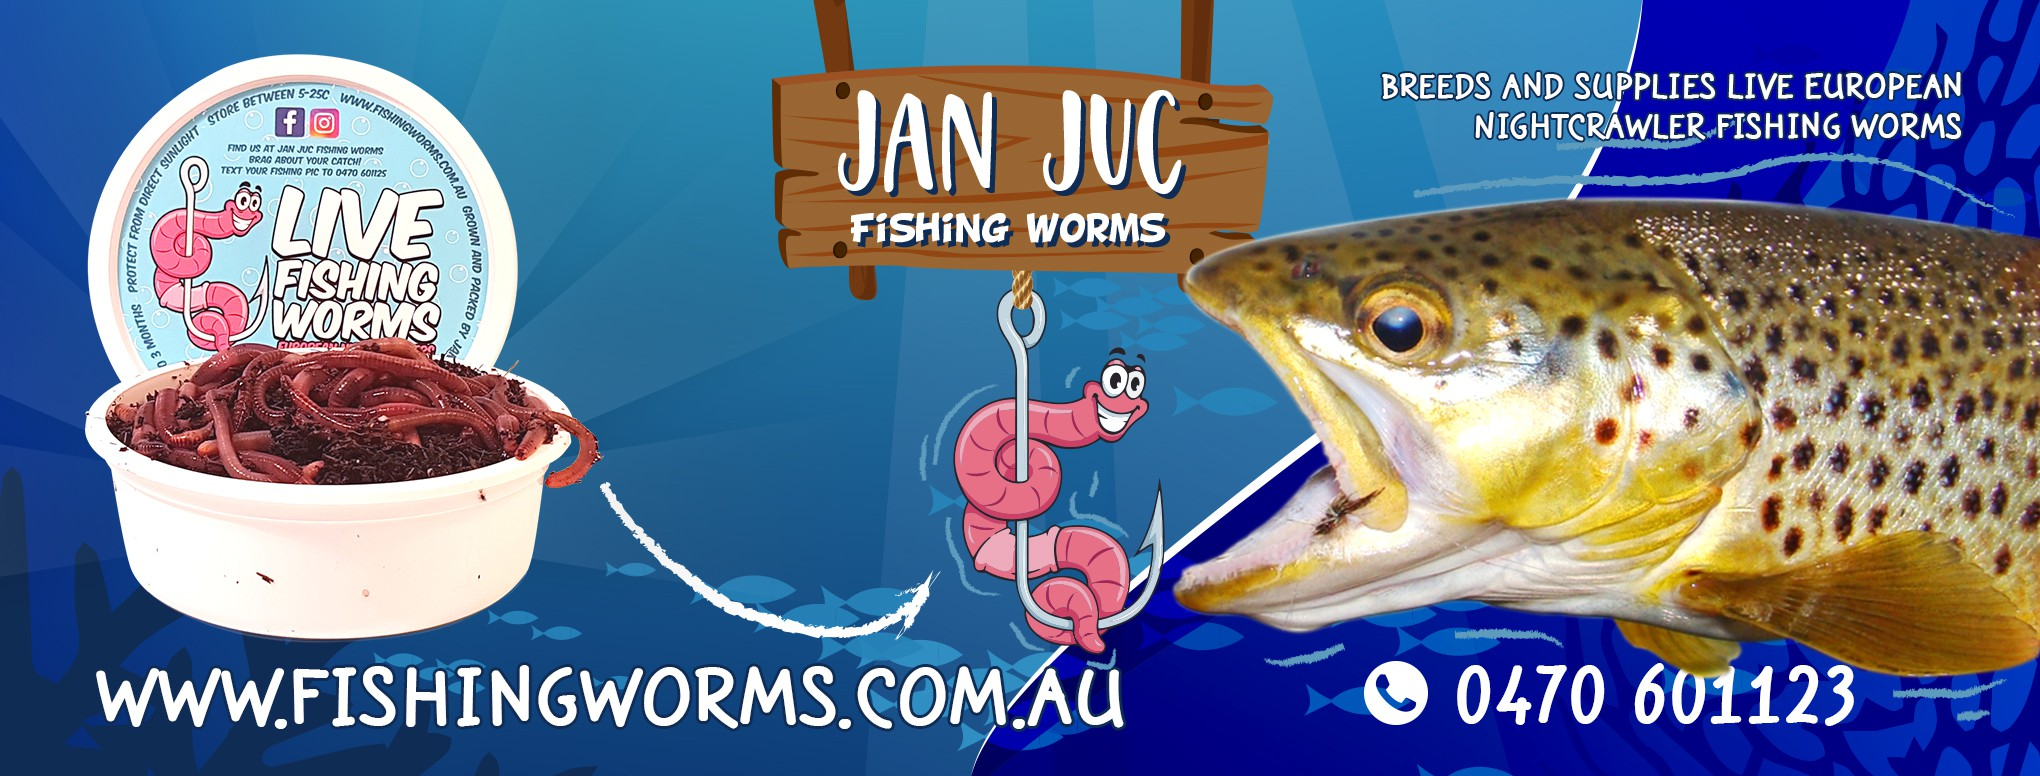 Facebook cover page for fishing bait worm company